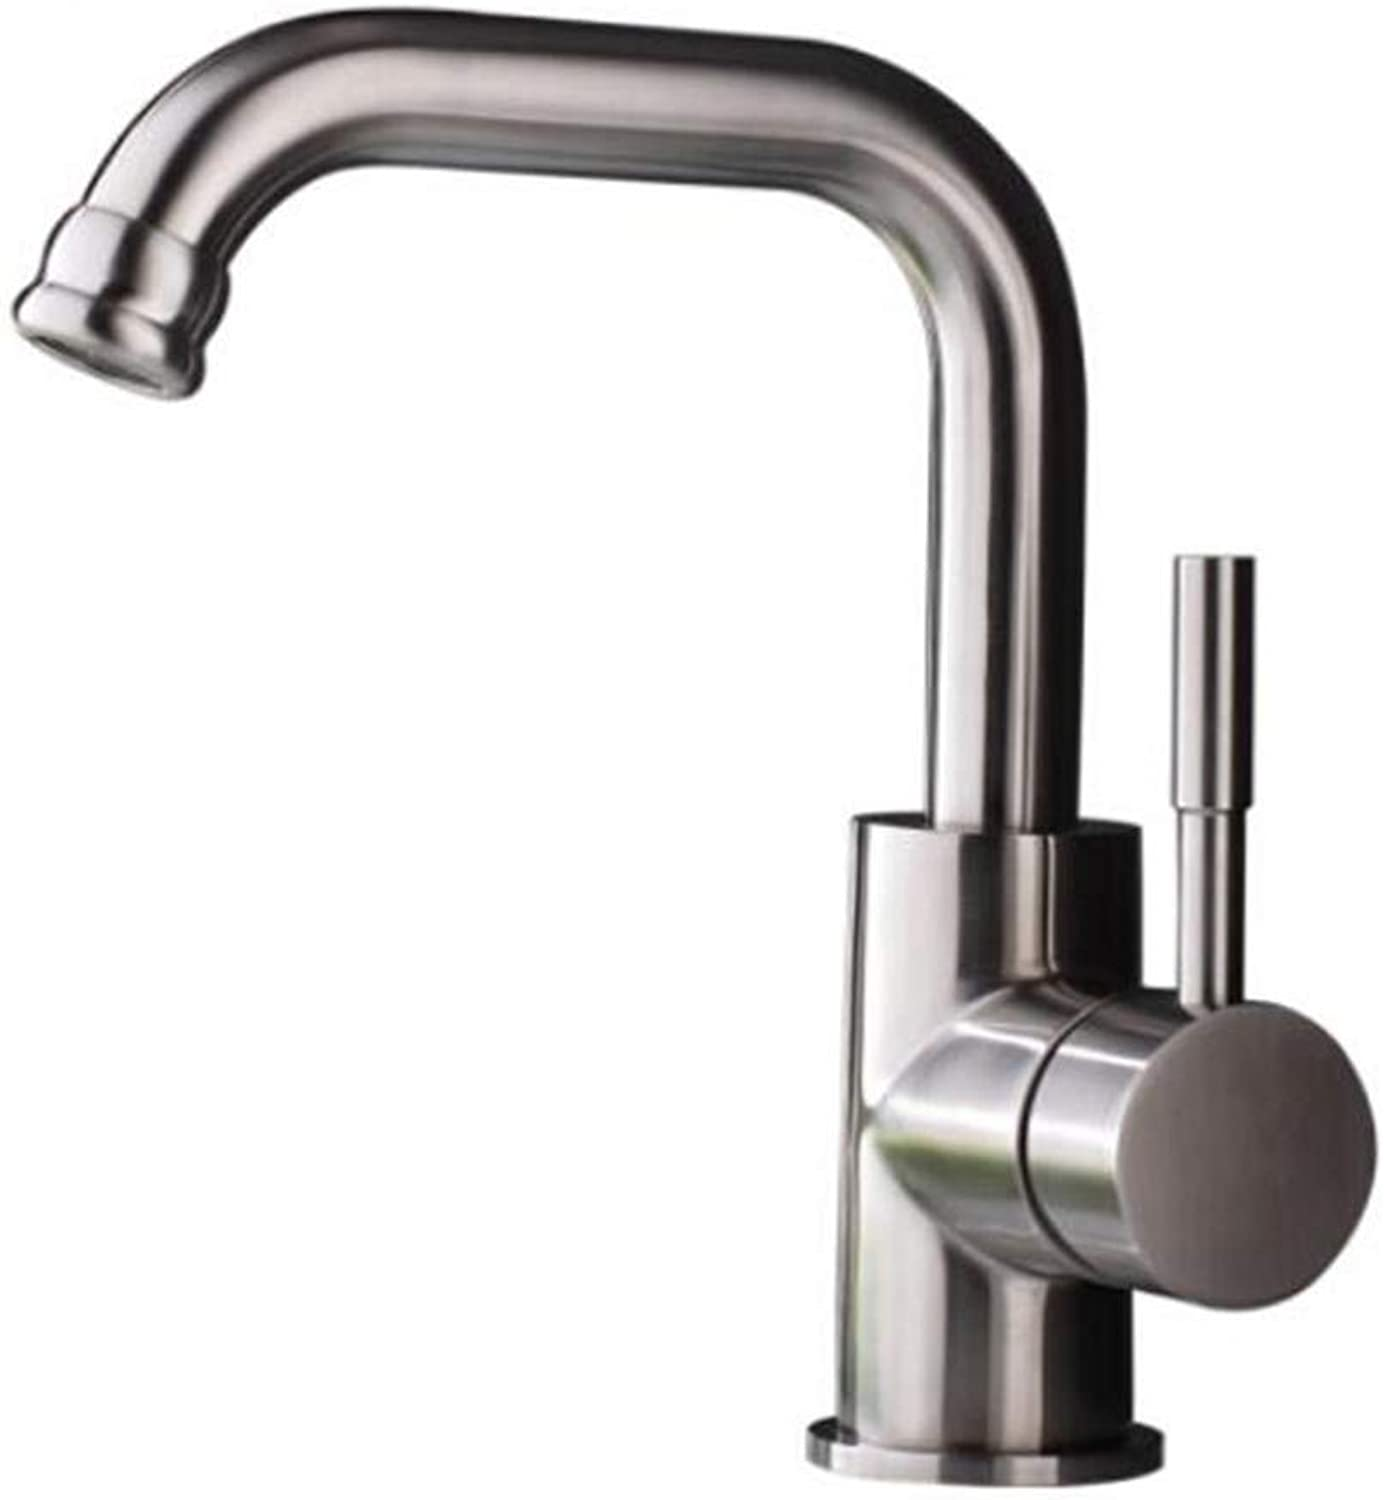 Faucet Waste Mono Spoutstainless Steel Basin Faucet Bathroom Bathroom Above Counter Basin Washbasin Washbasin Single Hole Hot and Cold Water Faucet Wire Drawing